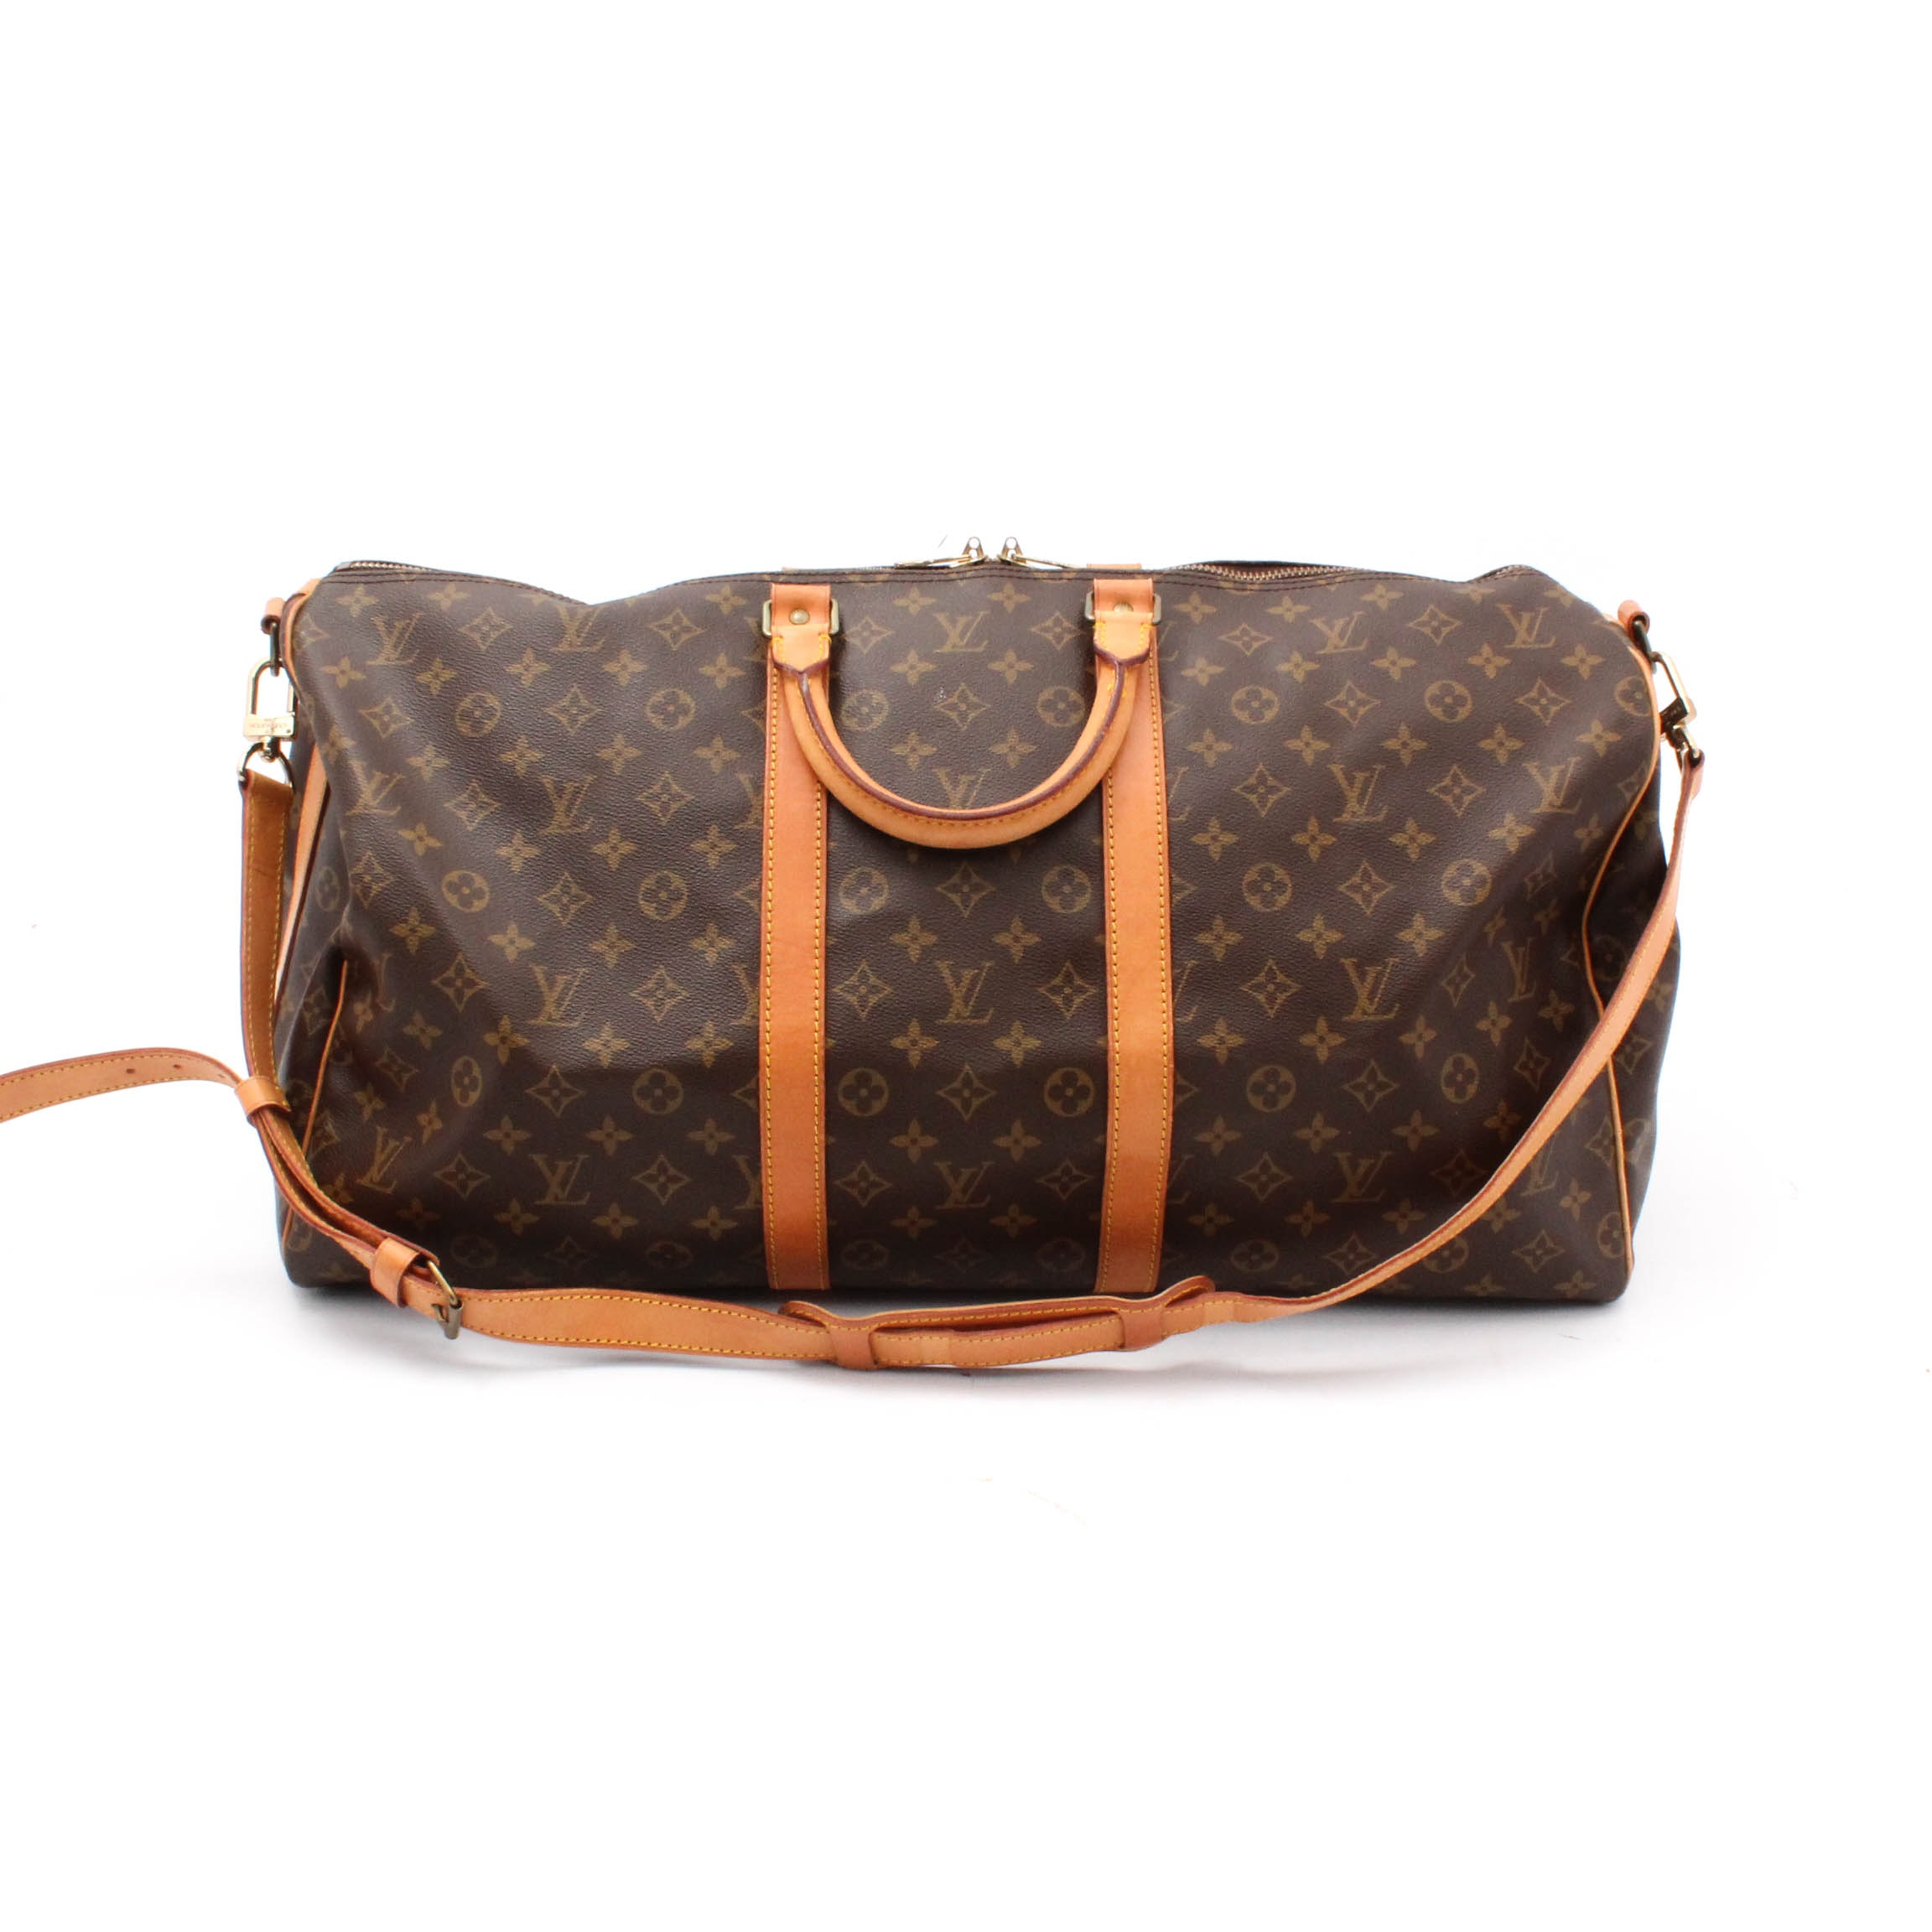 Louis Vuitton Monogram Keepall Bandoulière 55 Duffel Bag